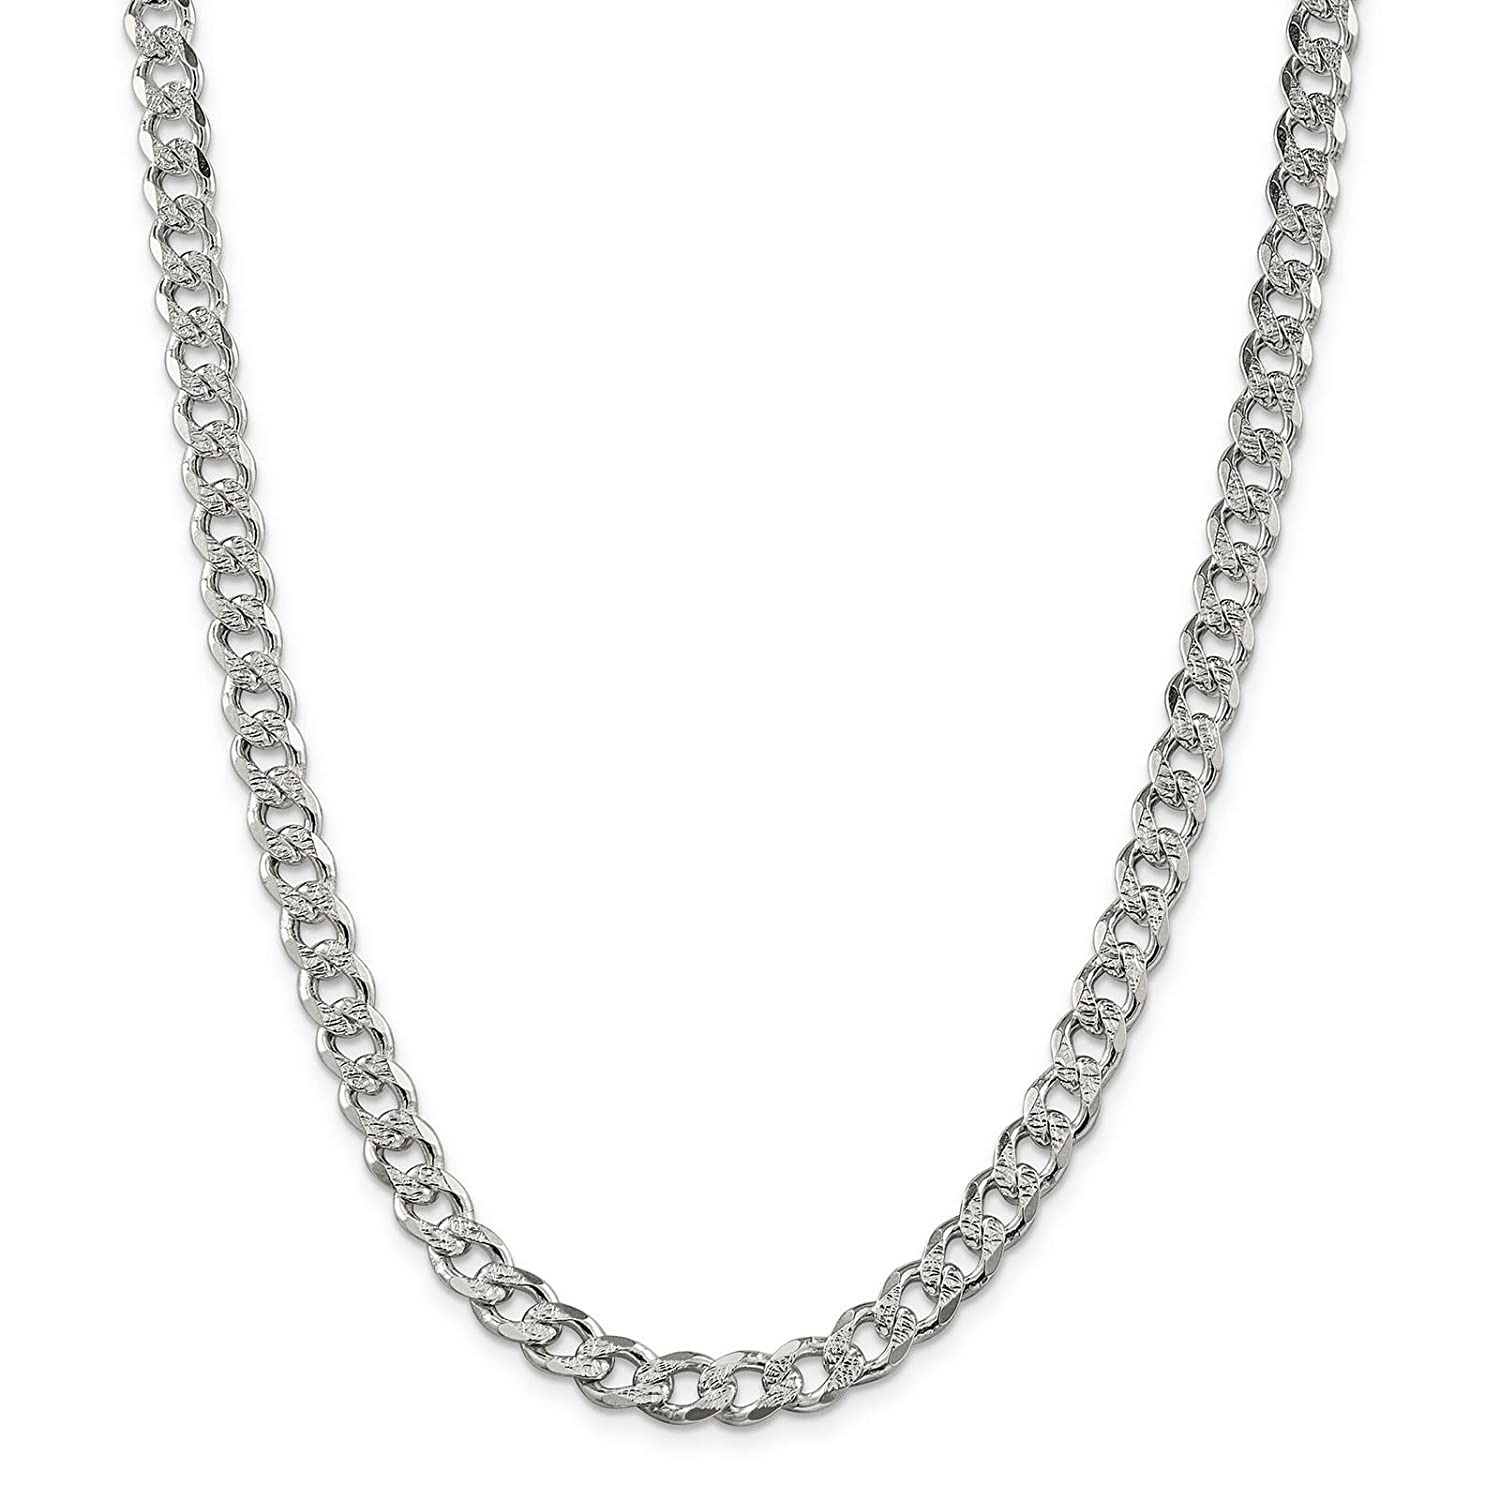 925 Sterling Silver 7.5mm Solid Polished Pave Curb Link Chain Necklace 7-24